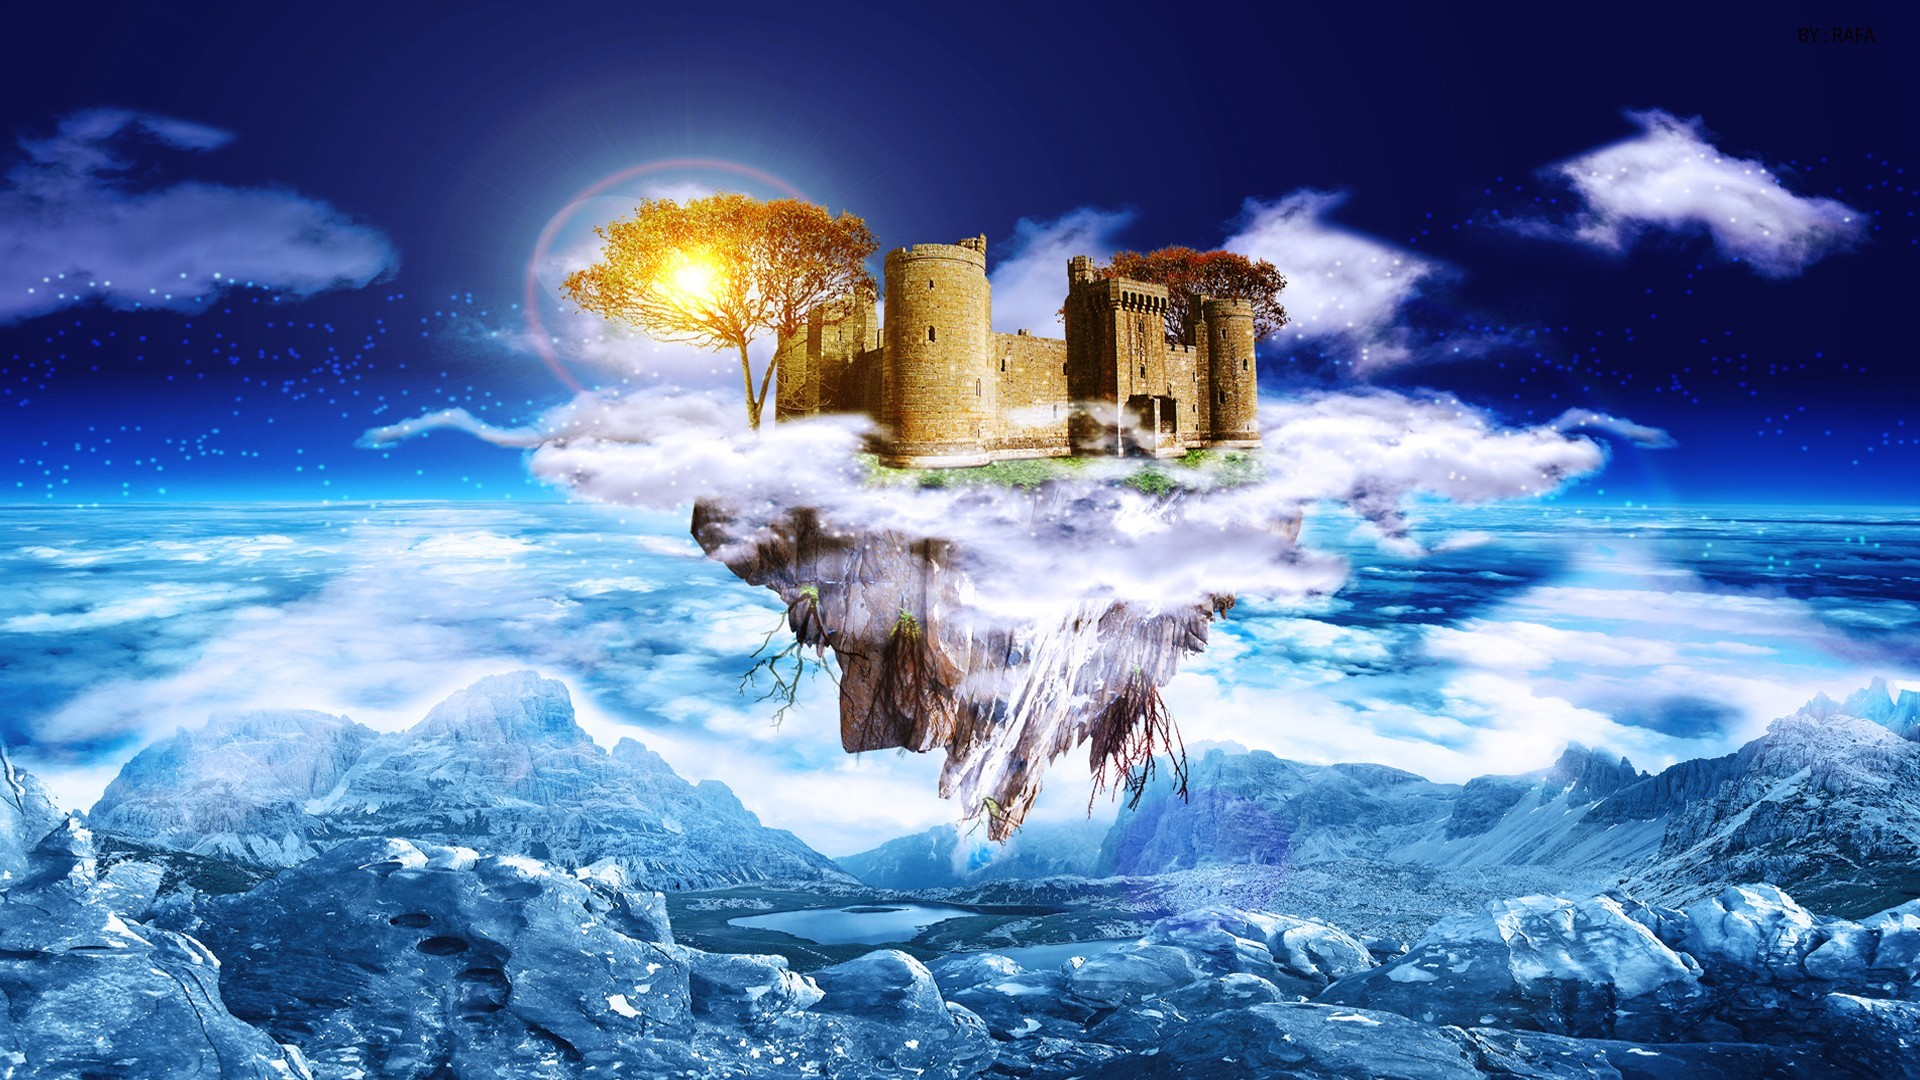 dreams digital art 3d HD Wallpaper